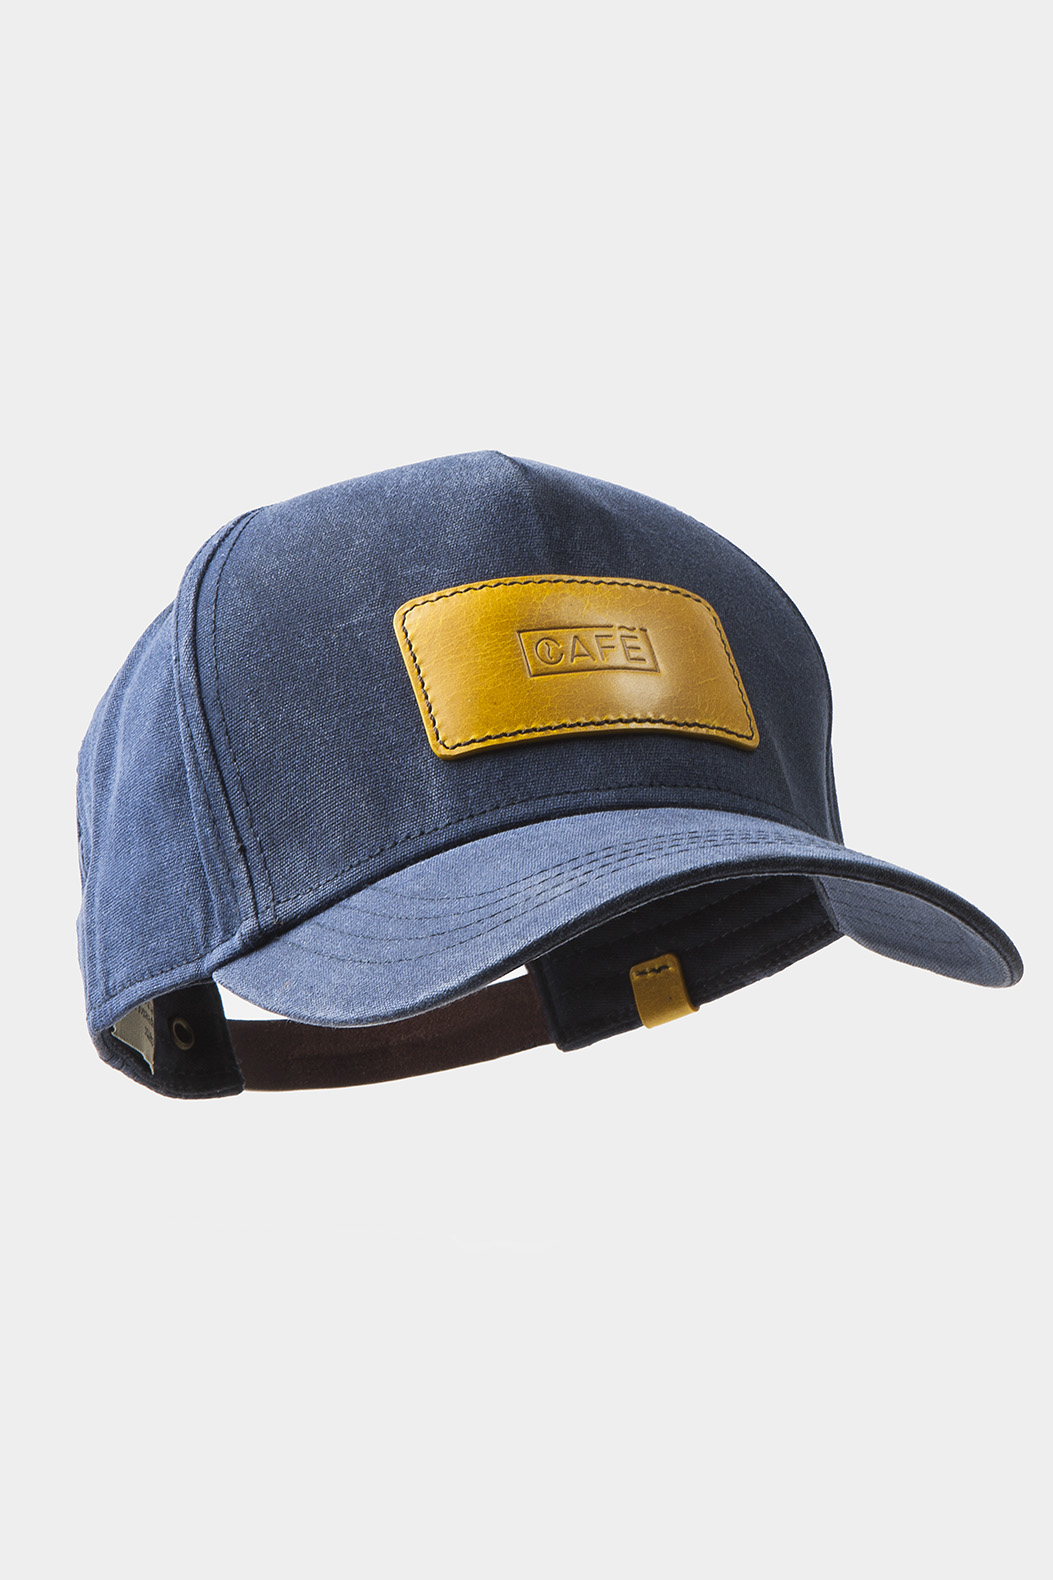 Yellow cap with leather black patch.